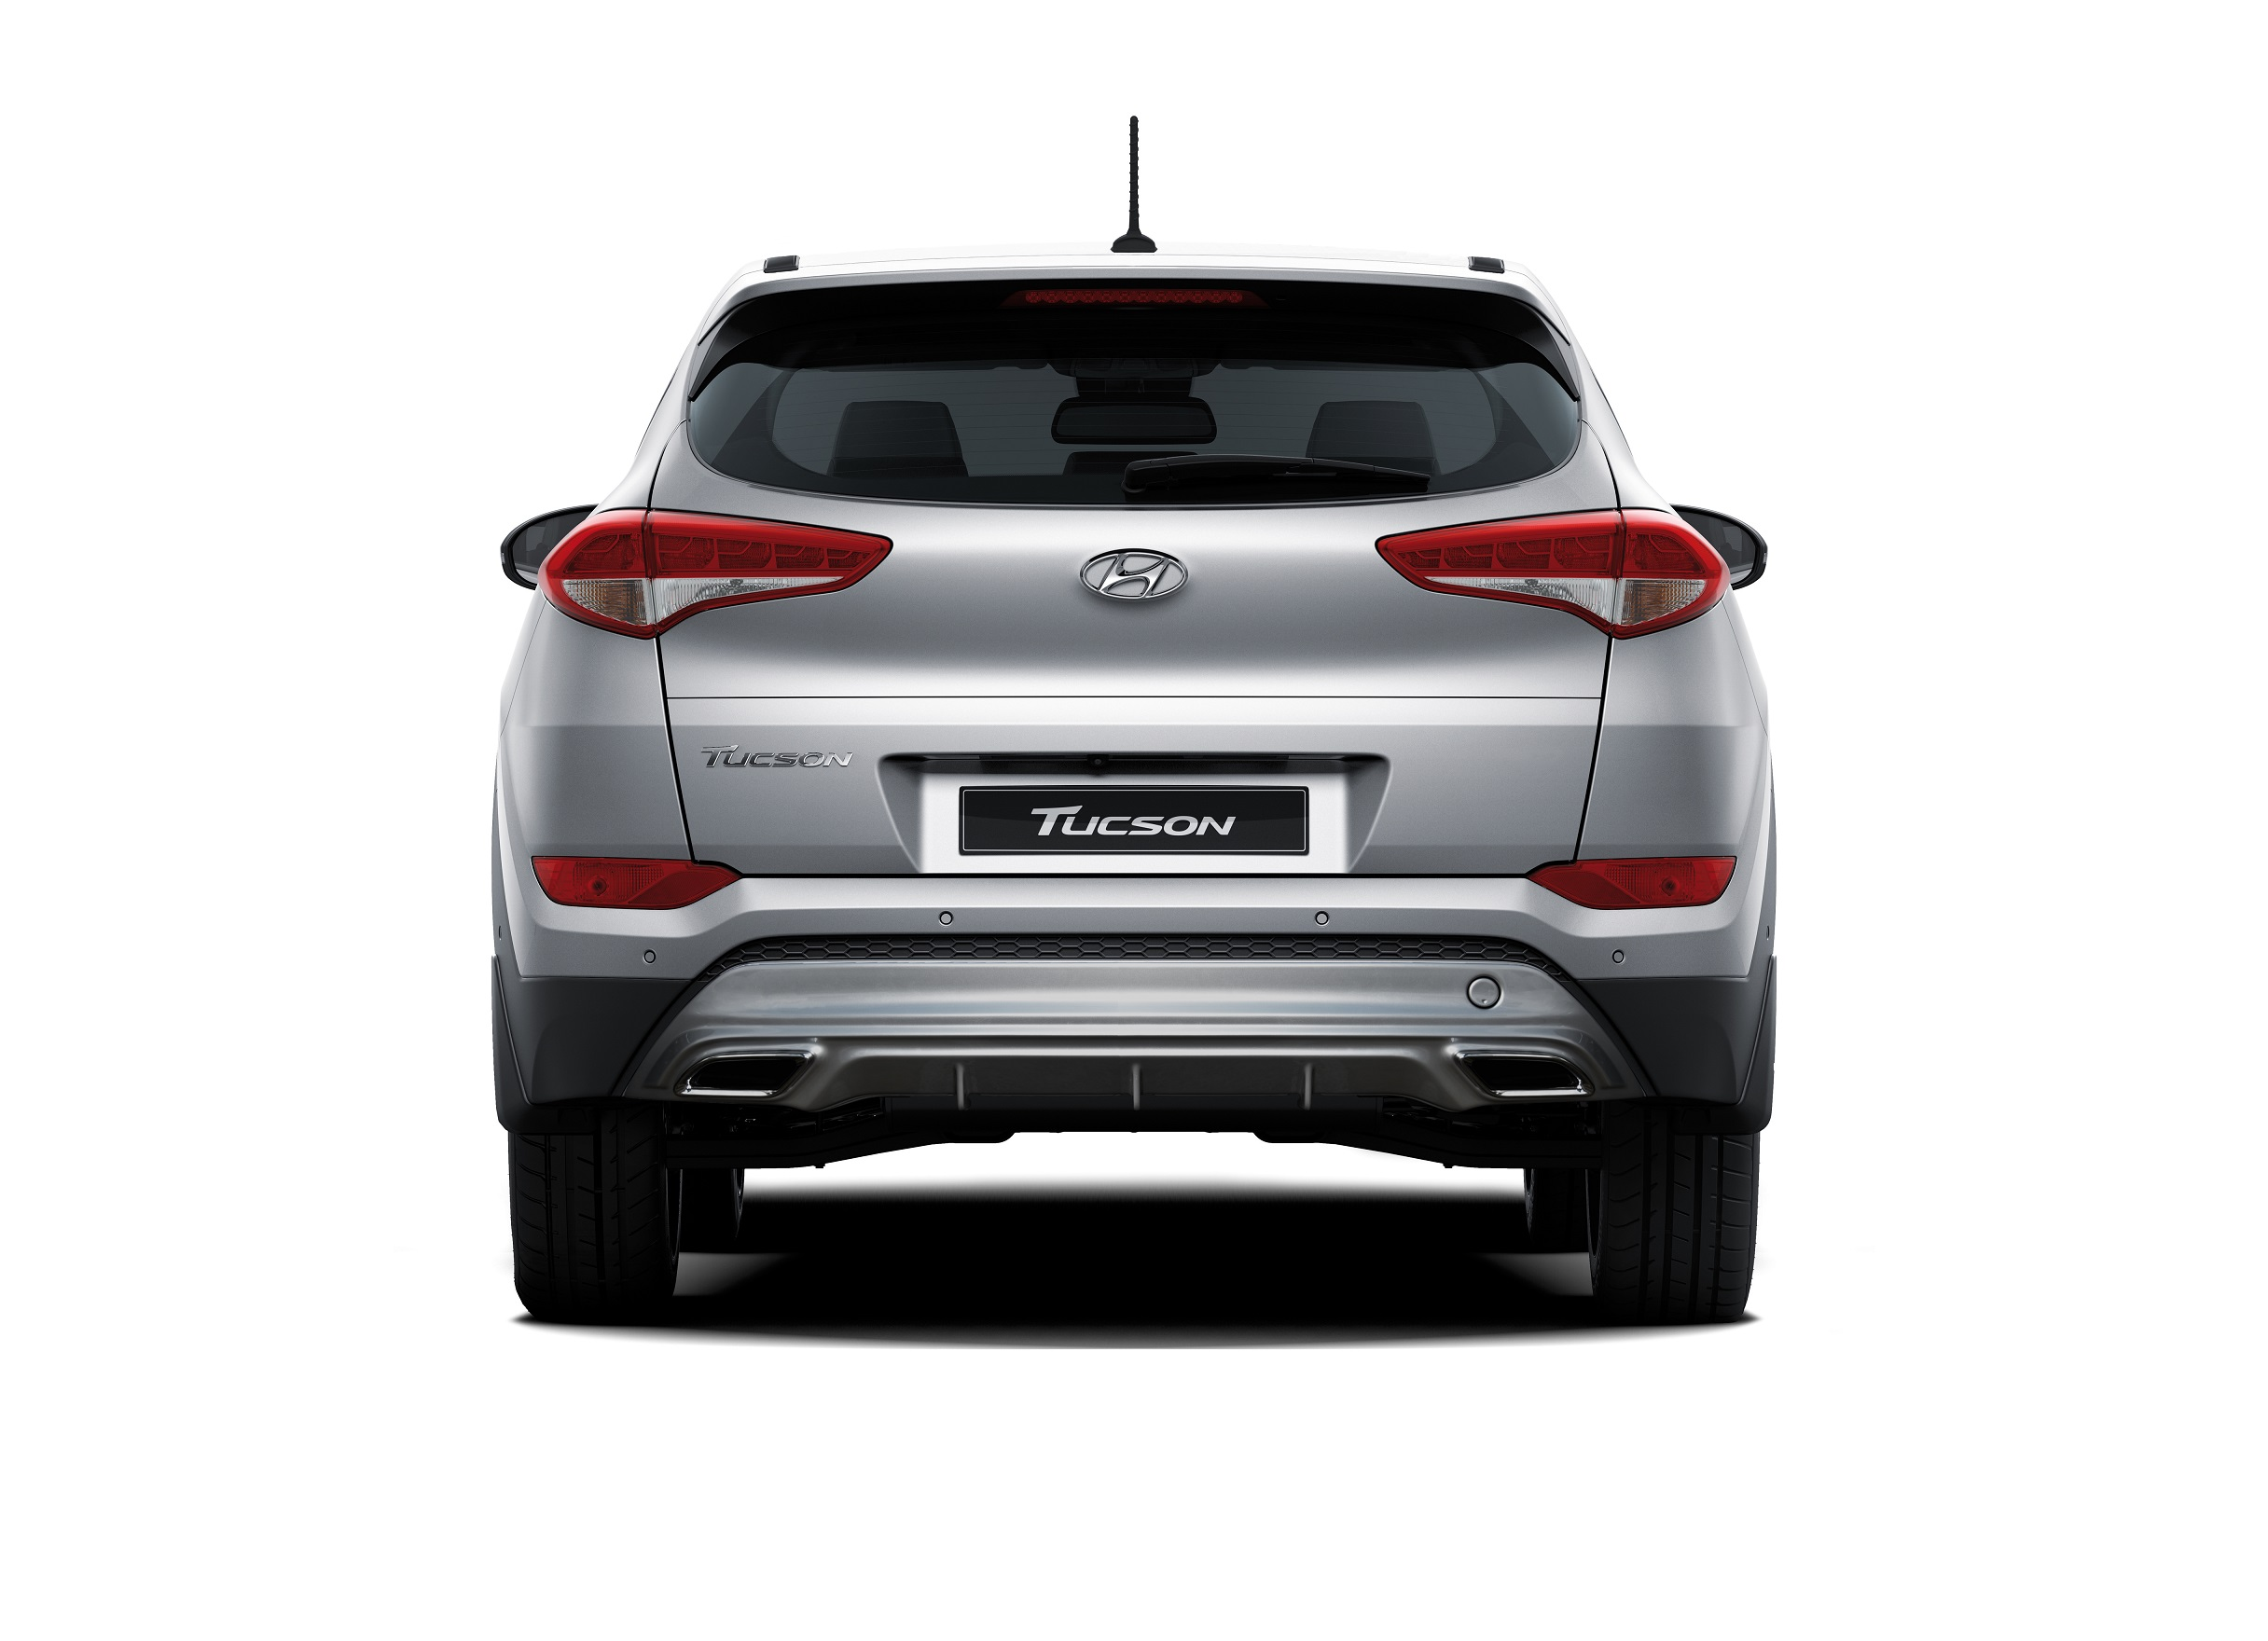 TUCSON 2016 - REAR VIEW (WITHOUT ROOF RACK)